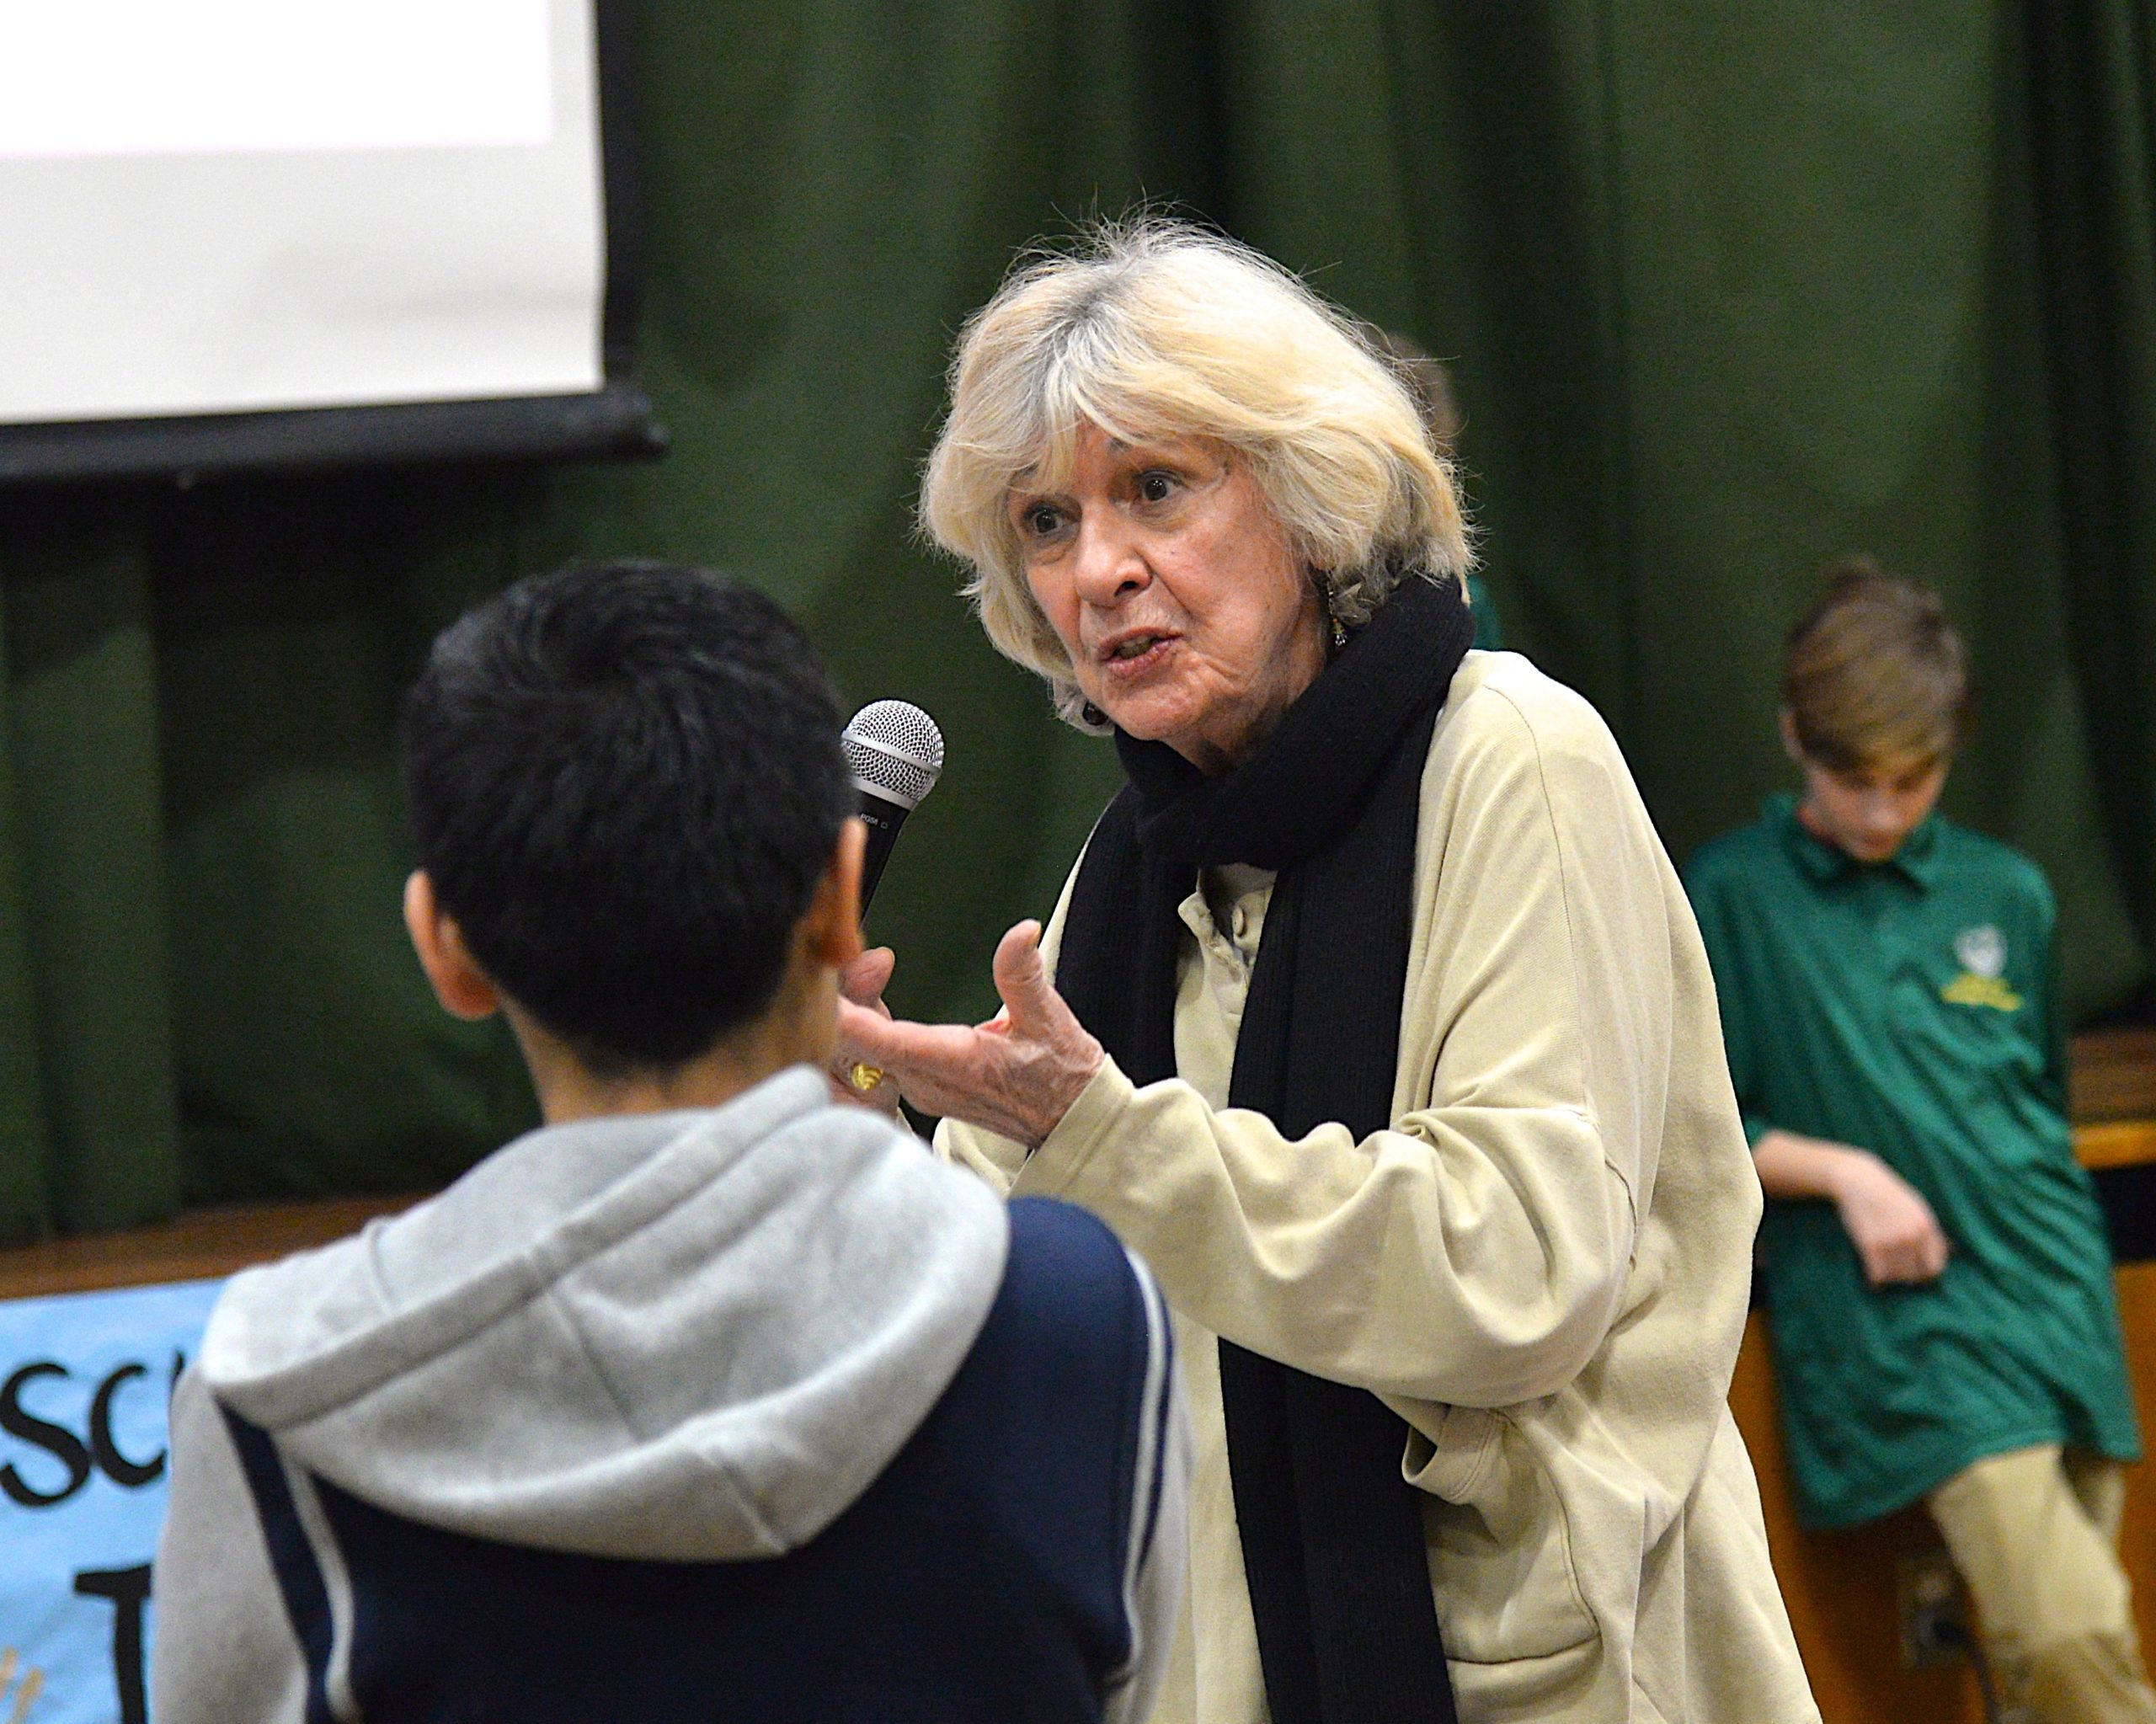 Phyllis Italiano introduces herself at the Springs School's Diversity Institute program on Friday. KYRIL BROMLEY